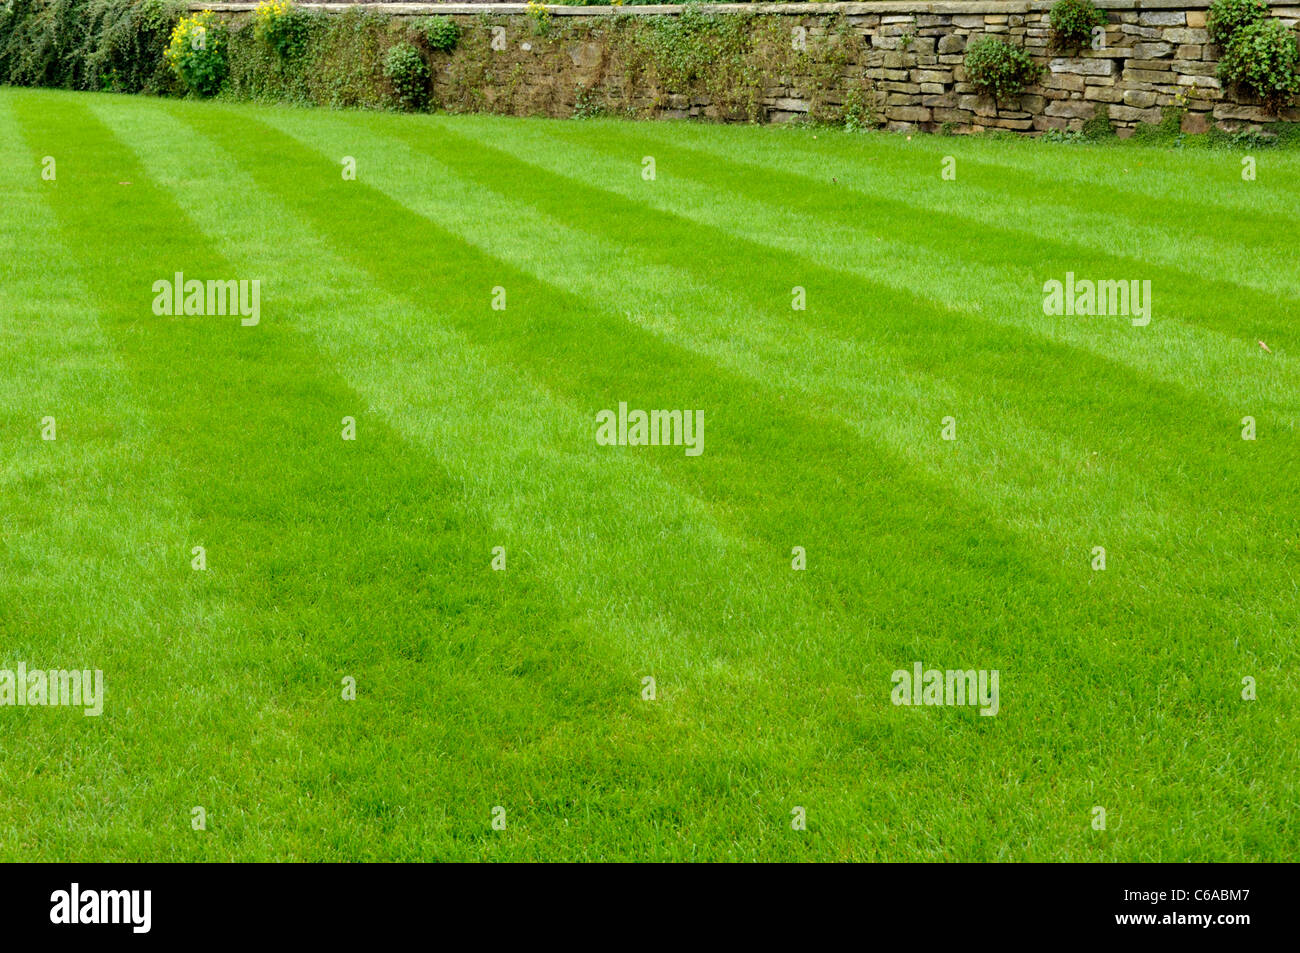 Stripes on lawn after mowing - Stock Image